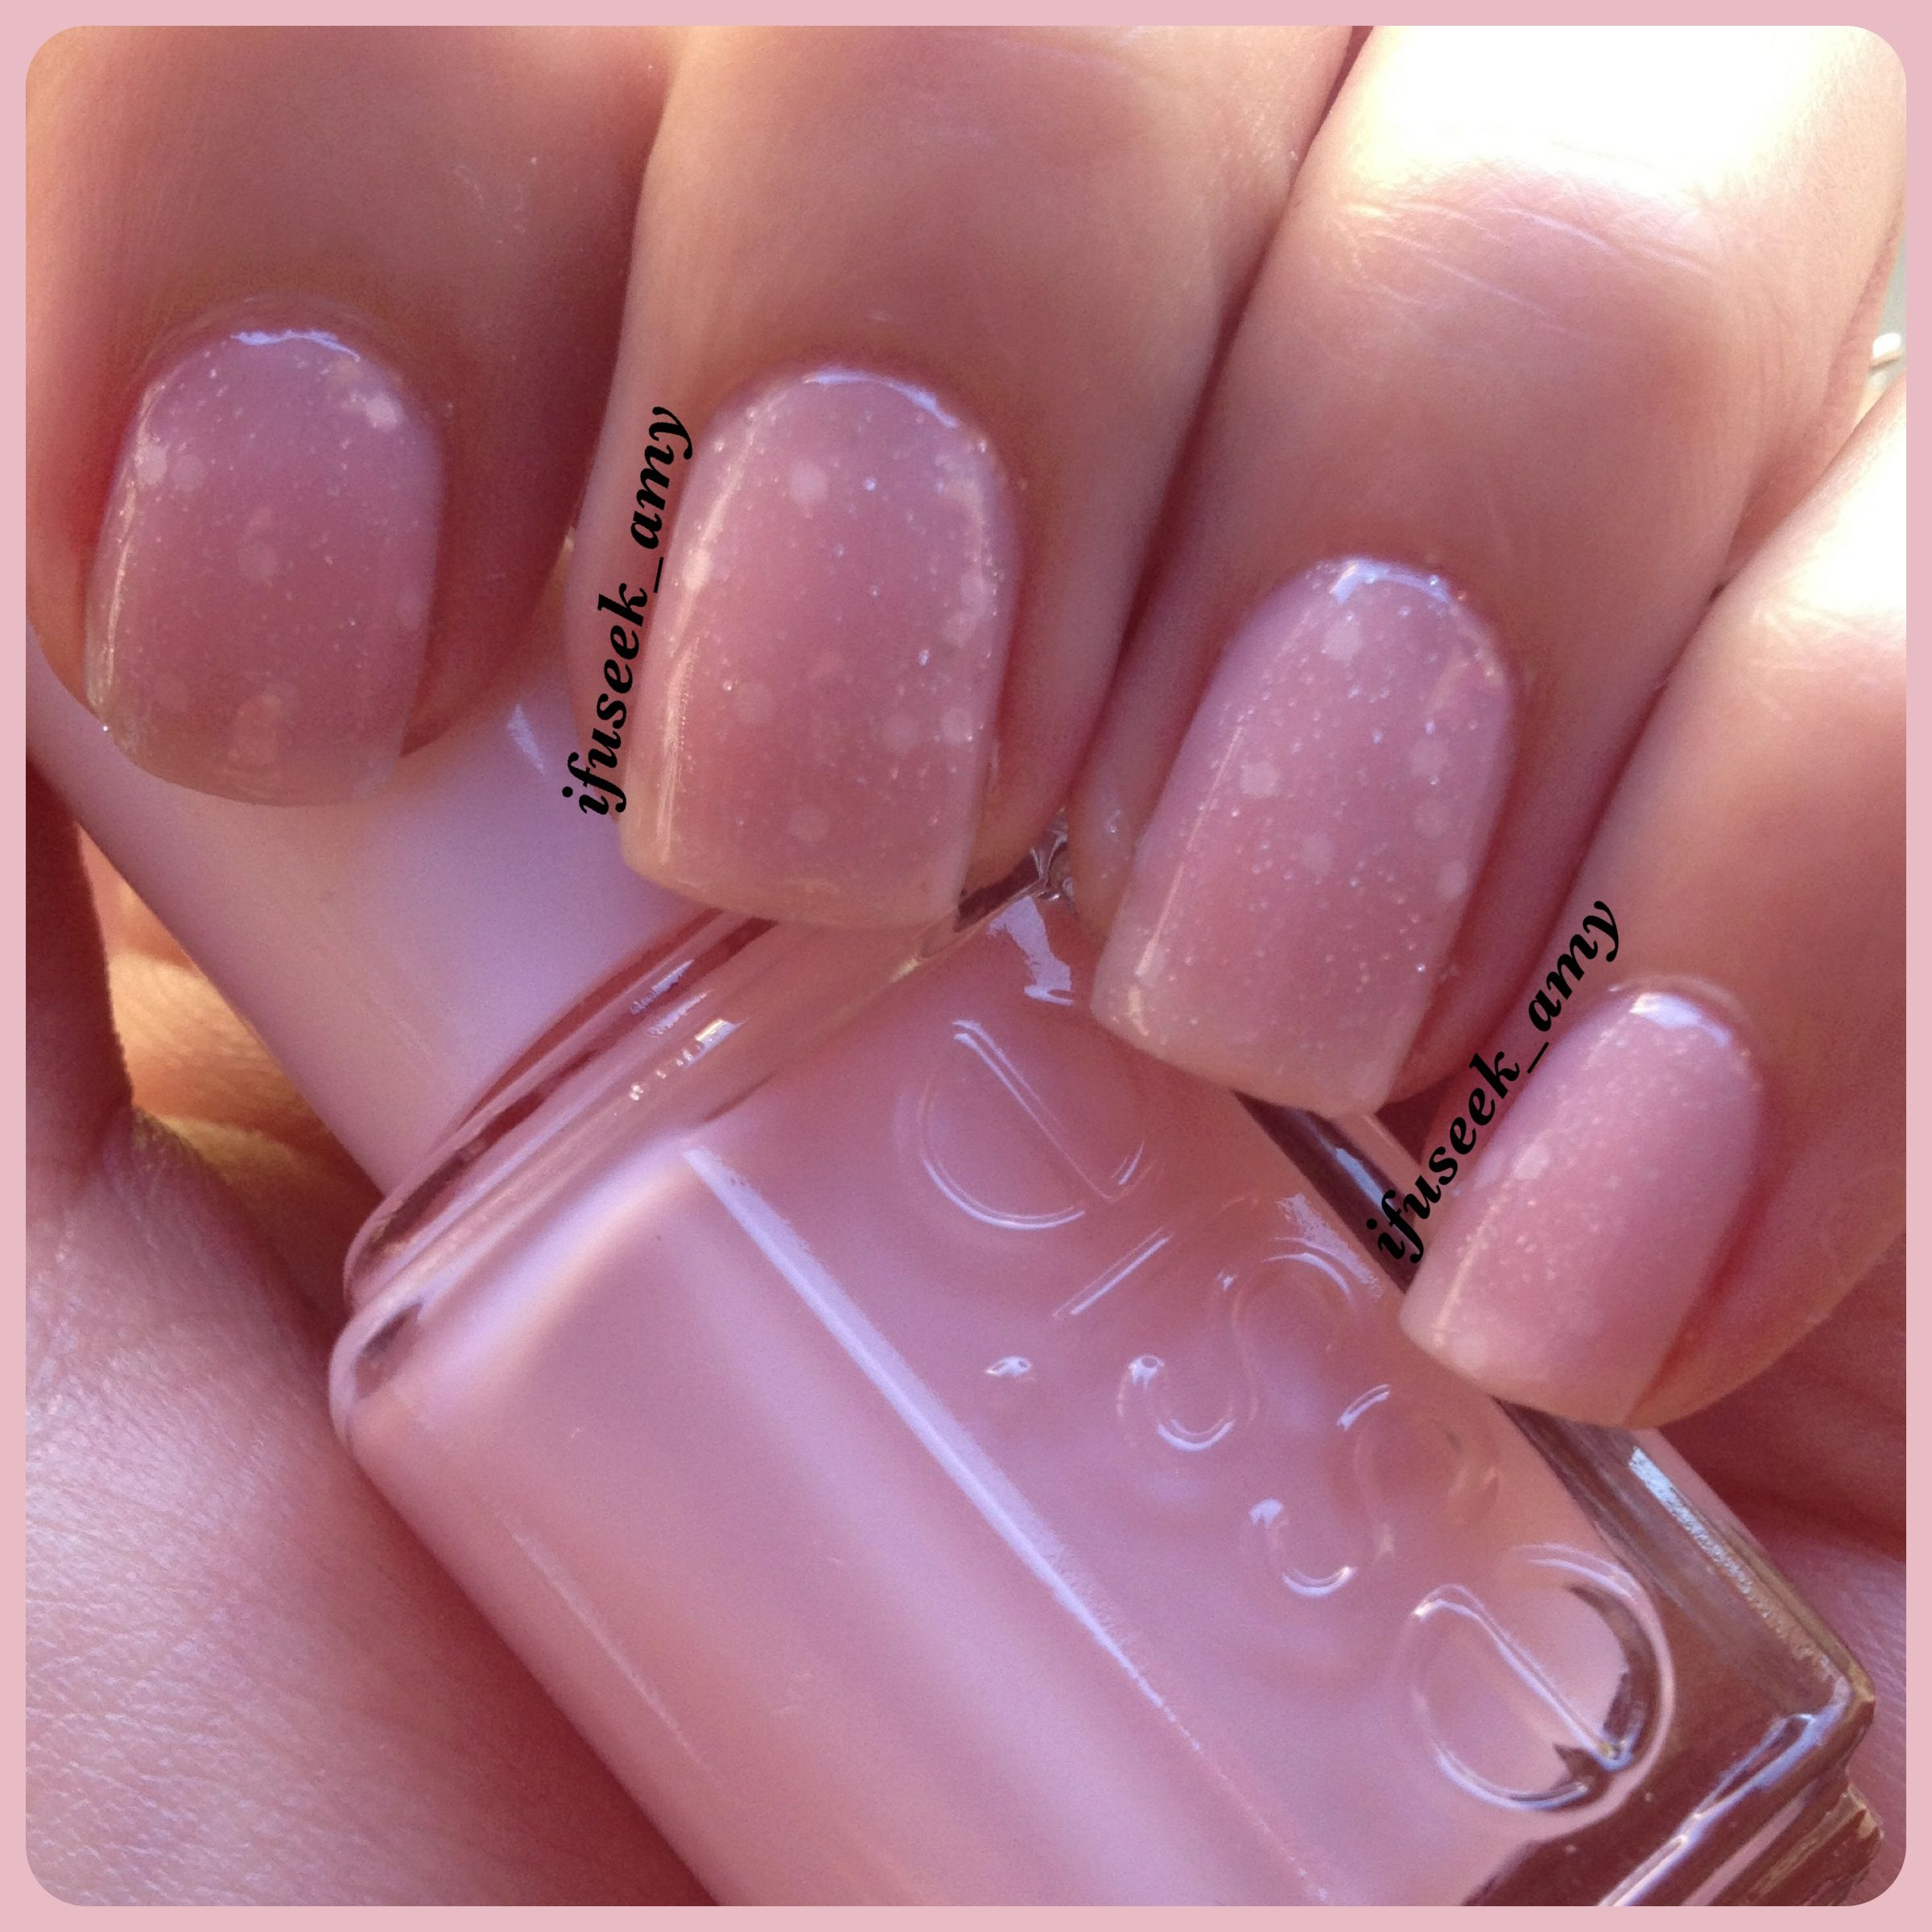 Jelly sandwich OPI-pirouette my whistle Essie-petal pink | NAIL ART ...